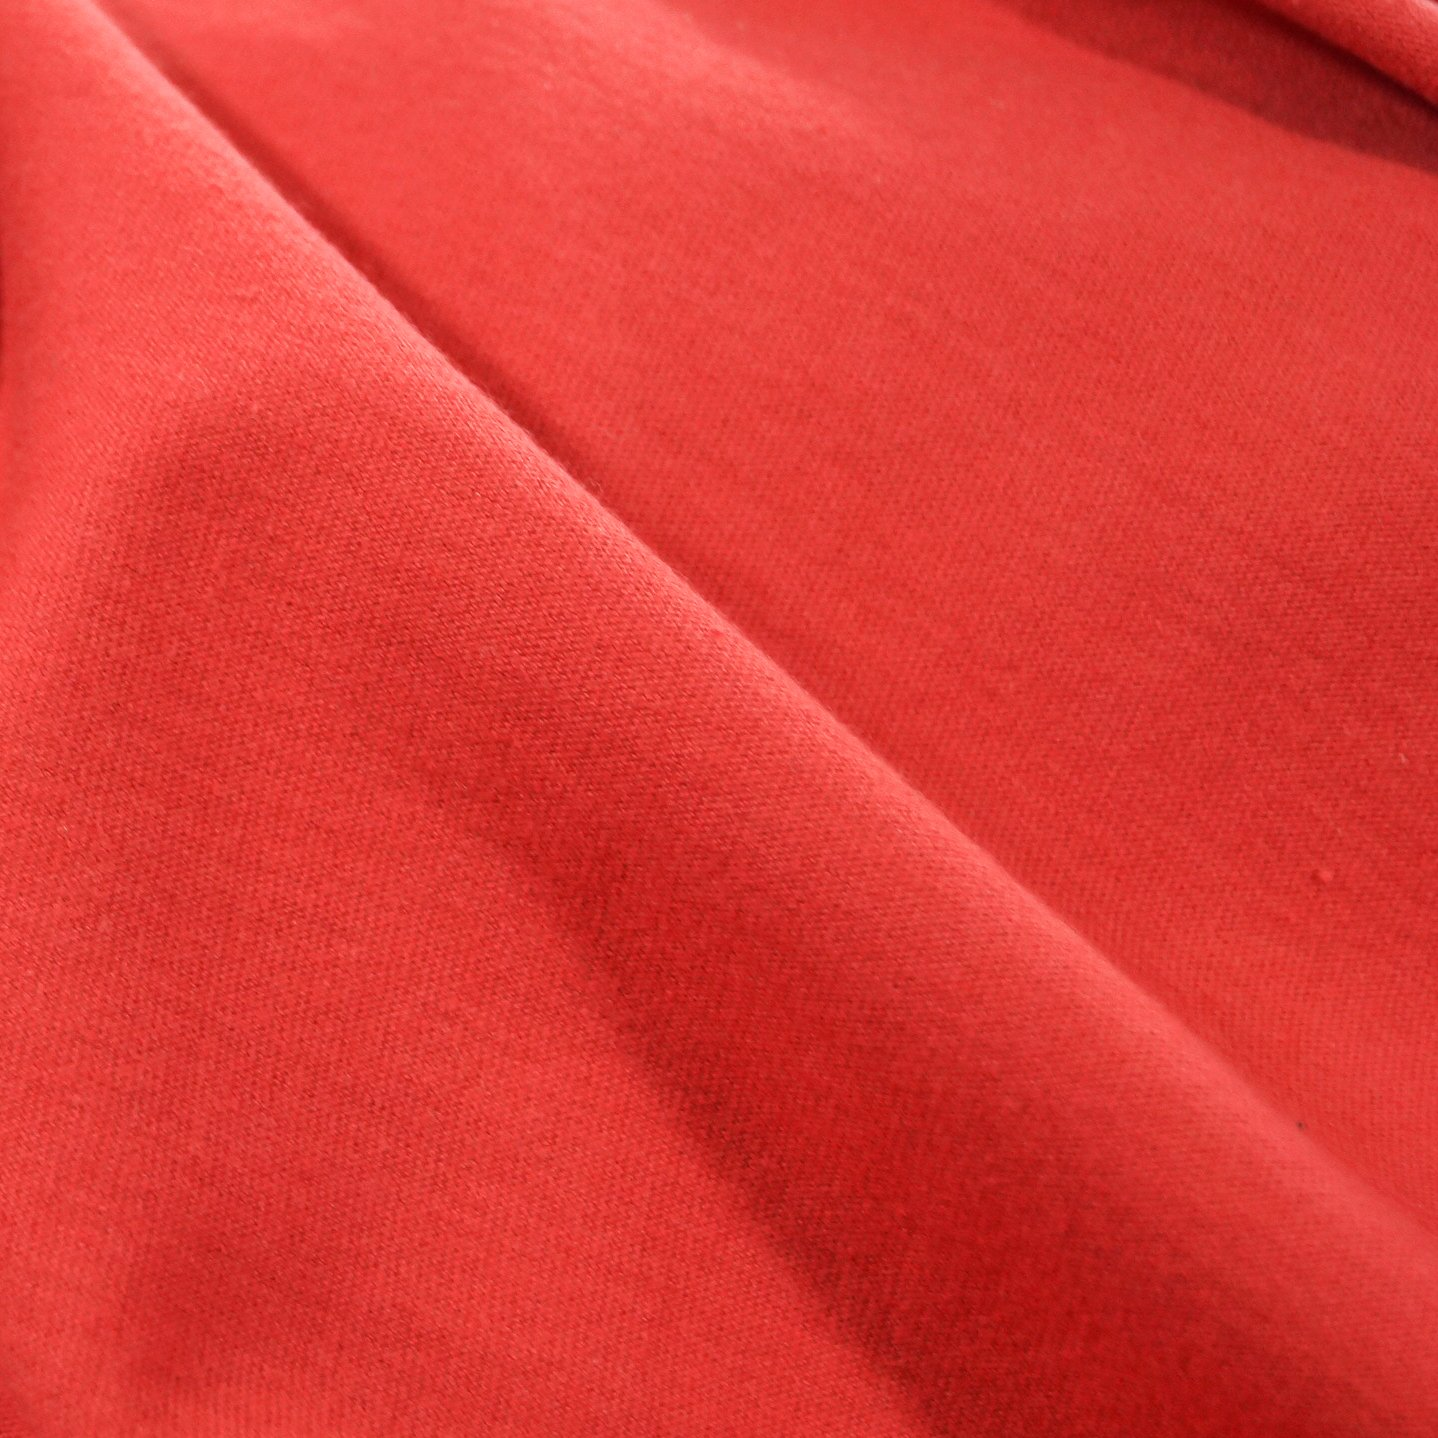 Jersey Knit - Rubi Red Organic